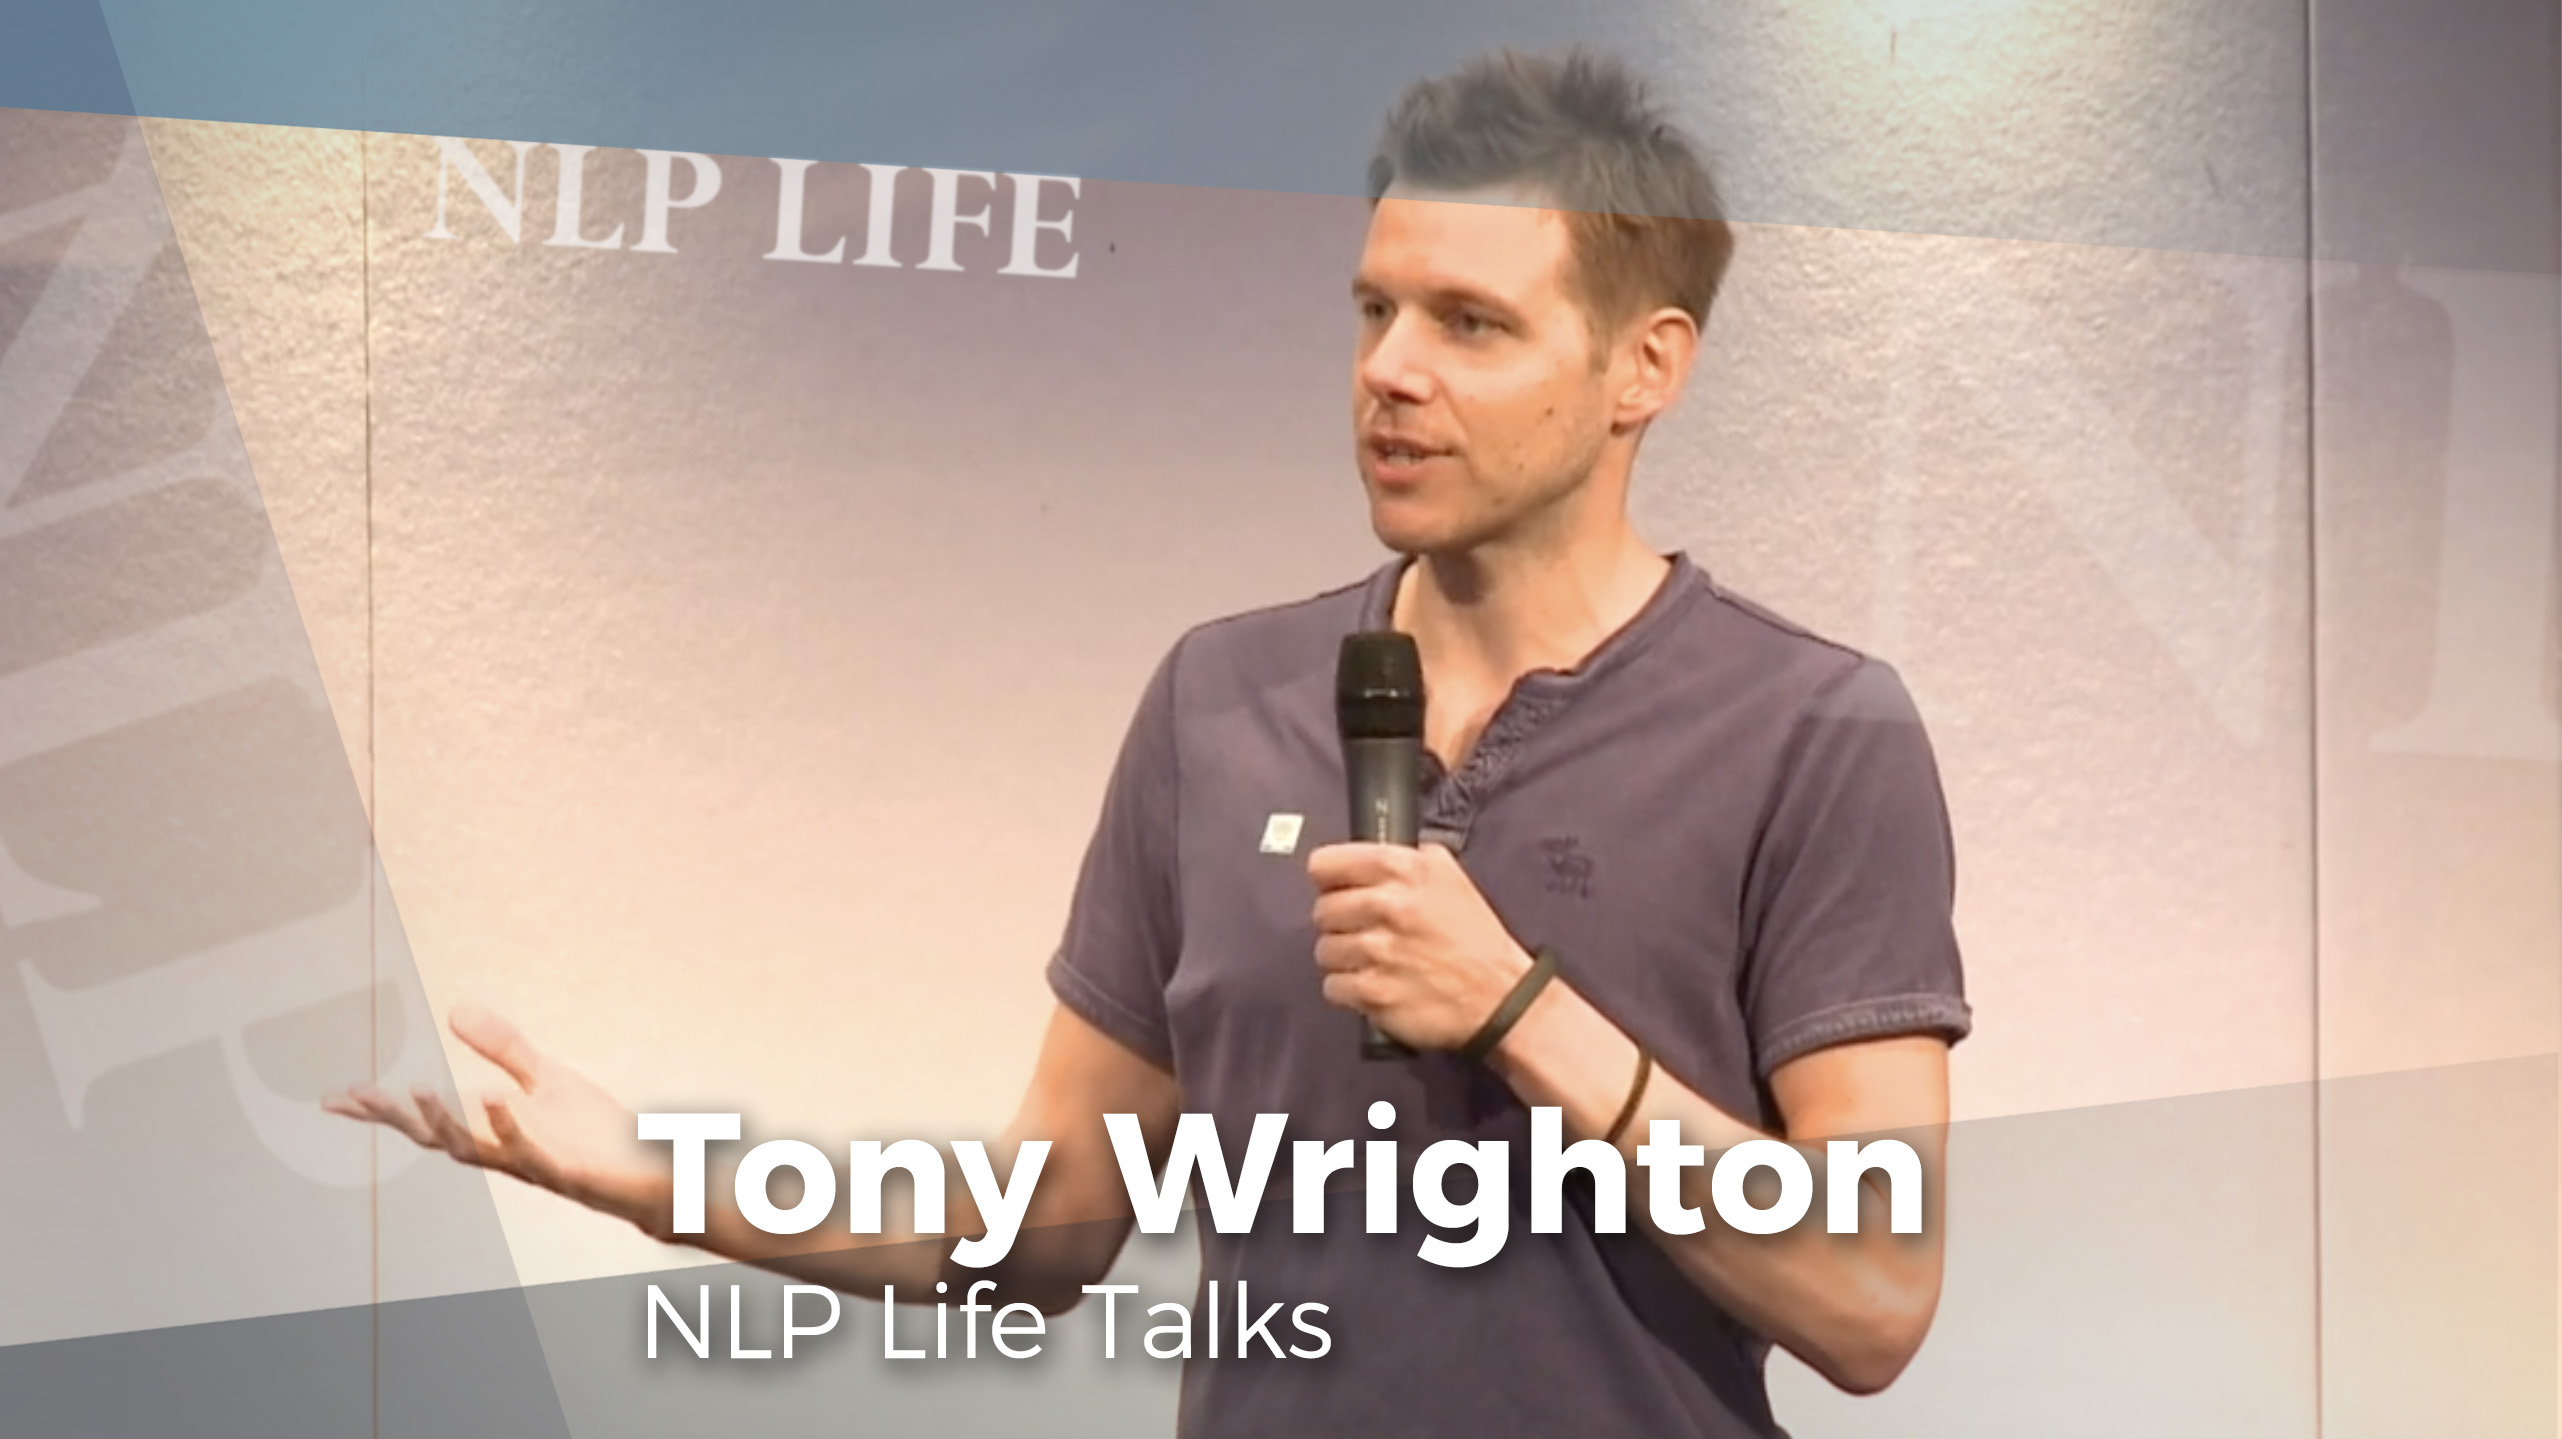 Tony Wrighton's NLP Life Talk